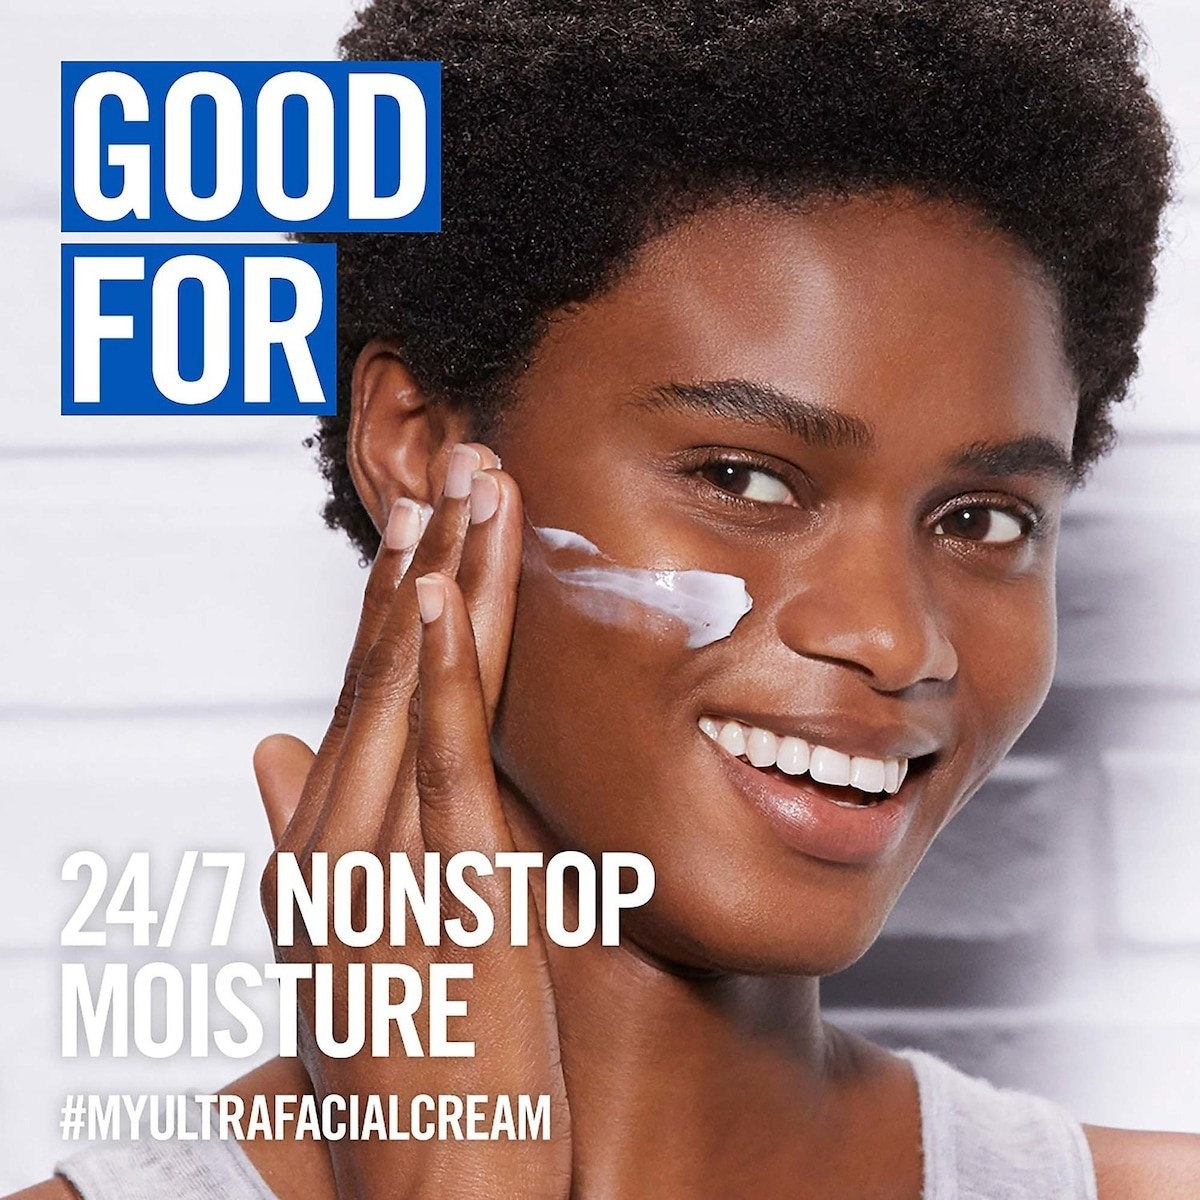 A model applying the cream with text 24/7 nonstop moisture